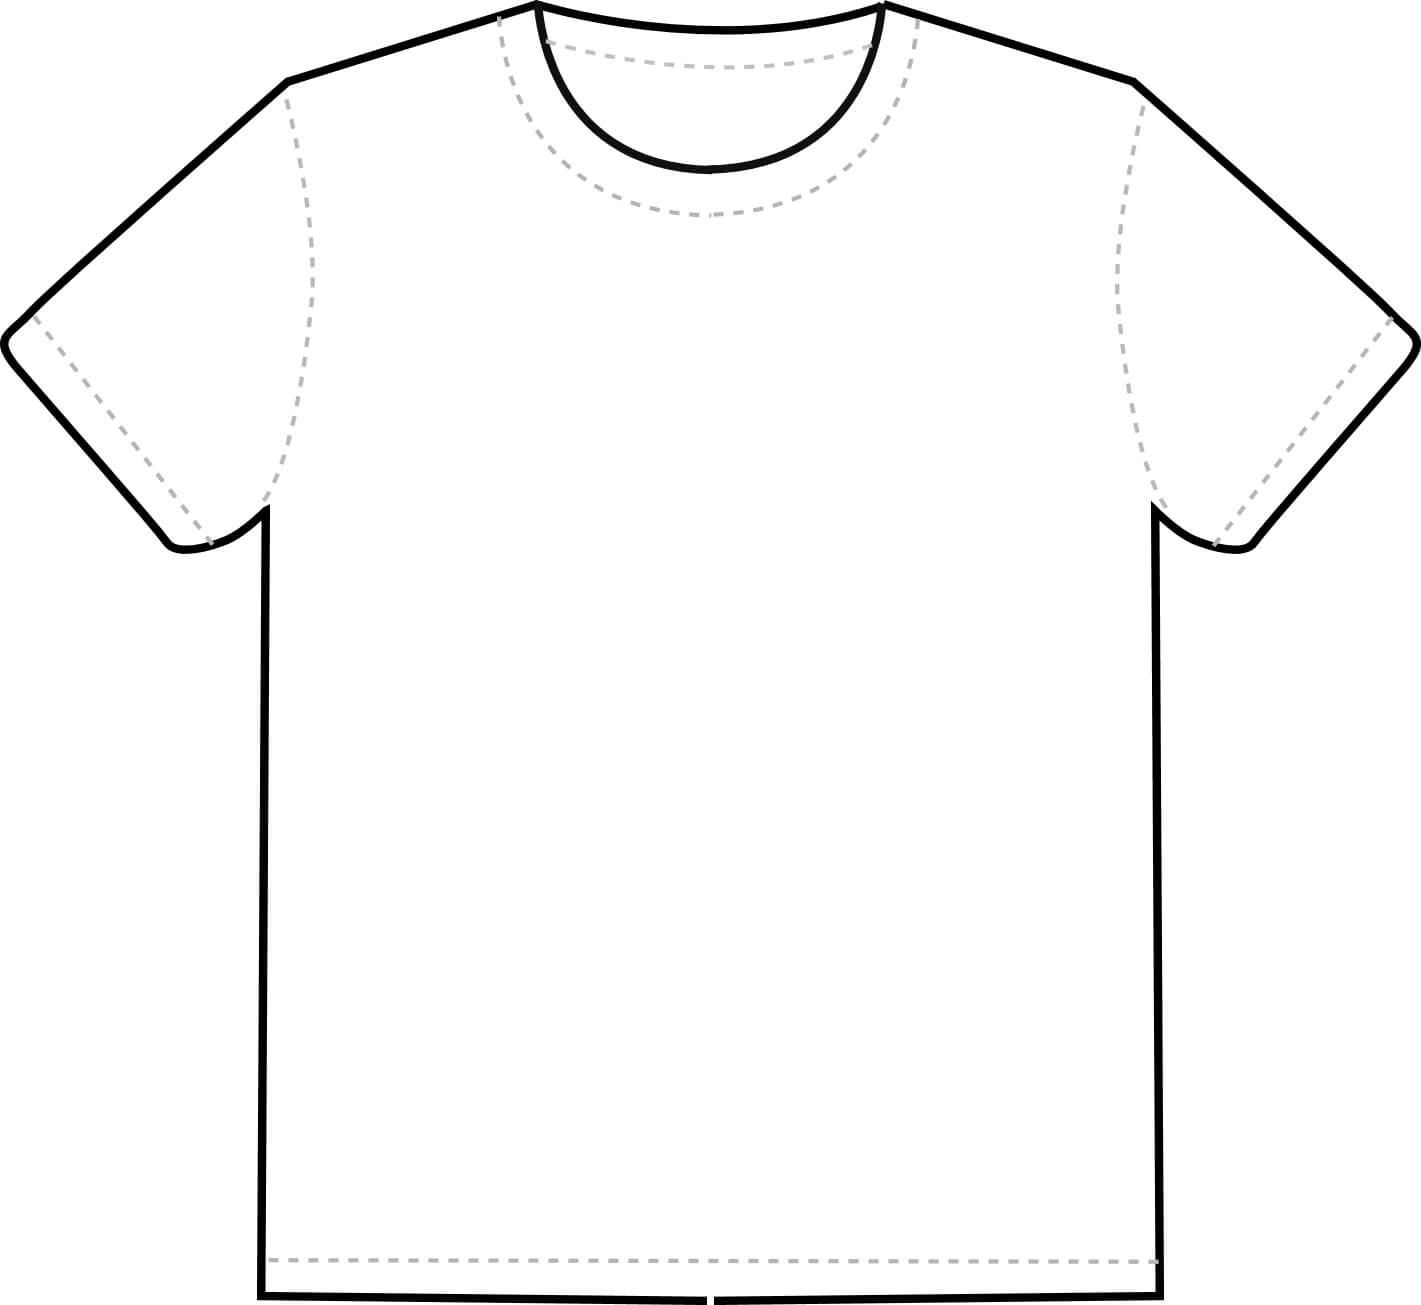 Free Printable T Shirt Template, Download Free Clip Art Inside Printable Blank Tshirt Template